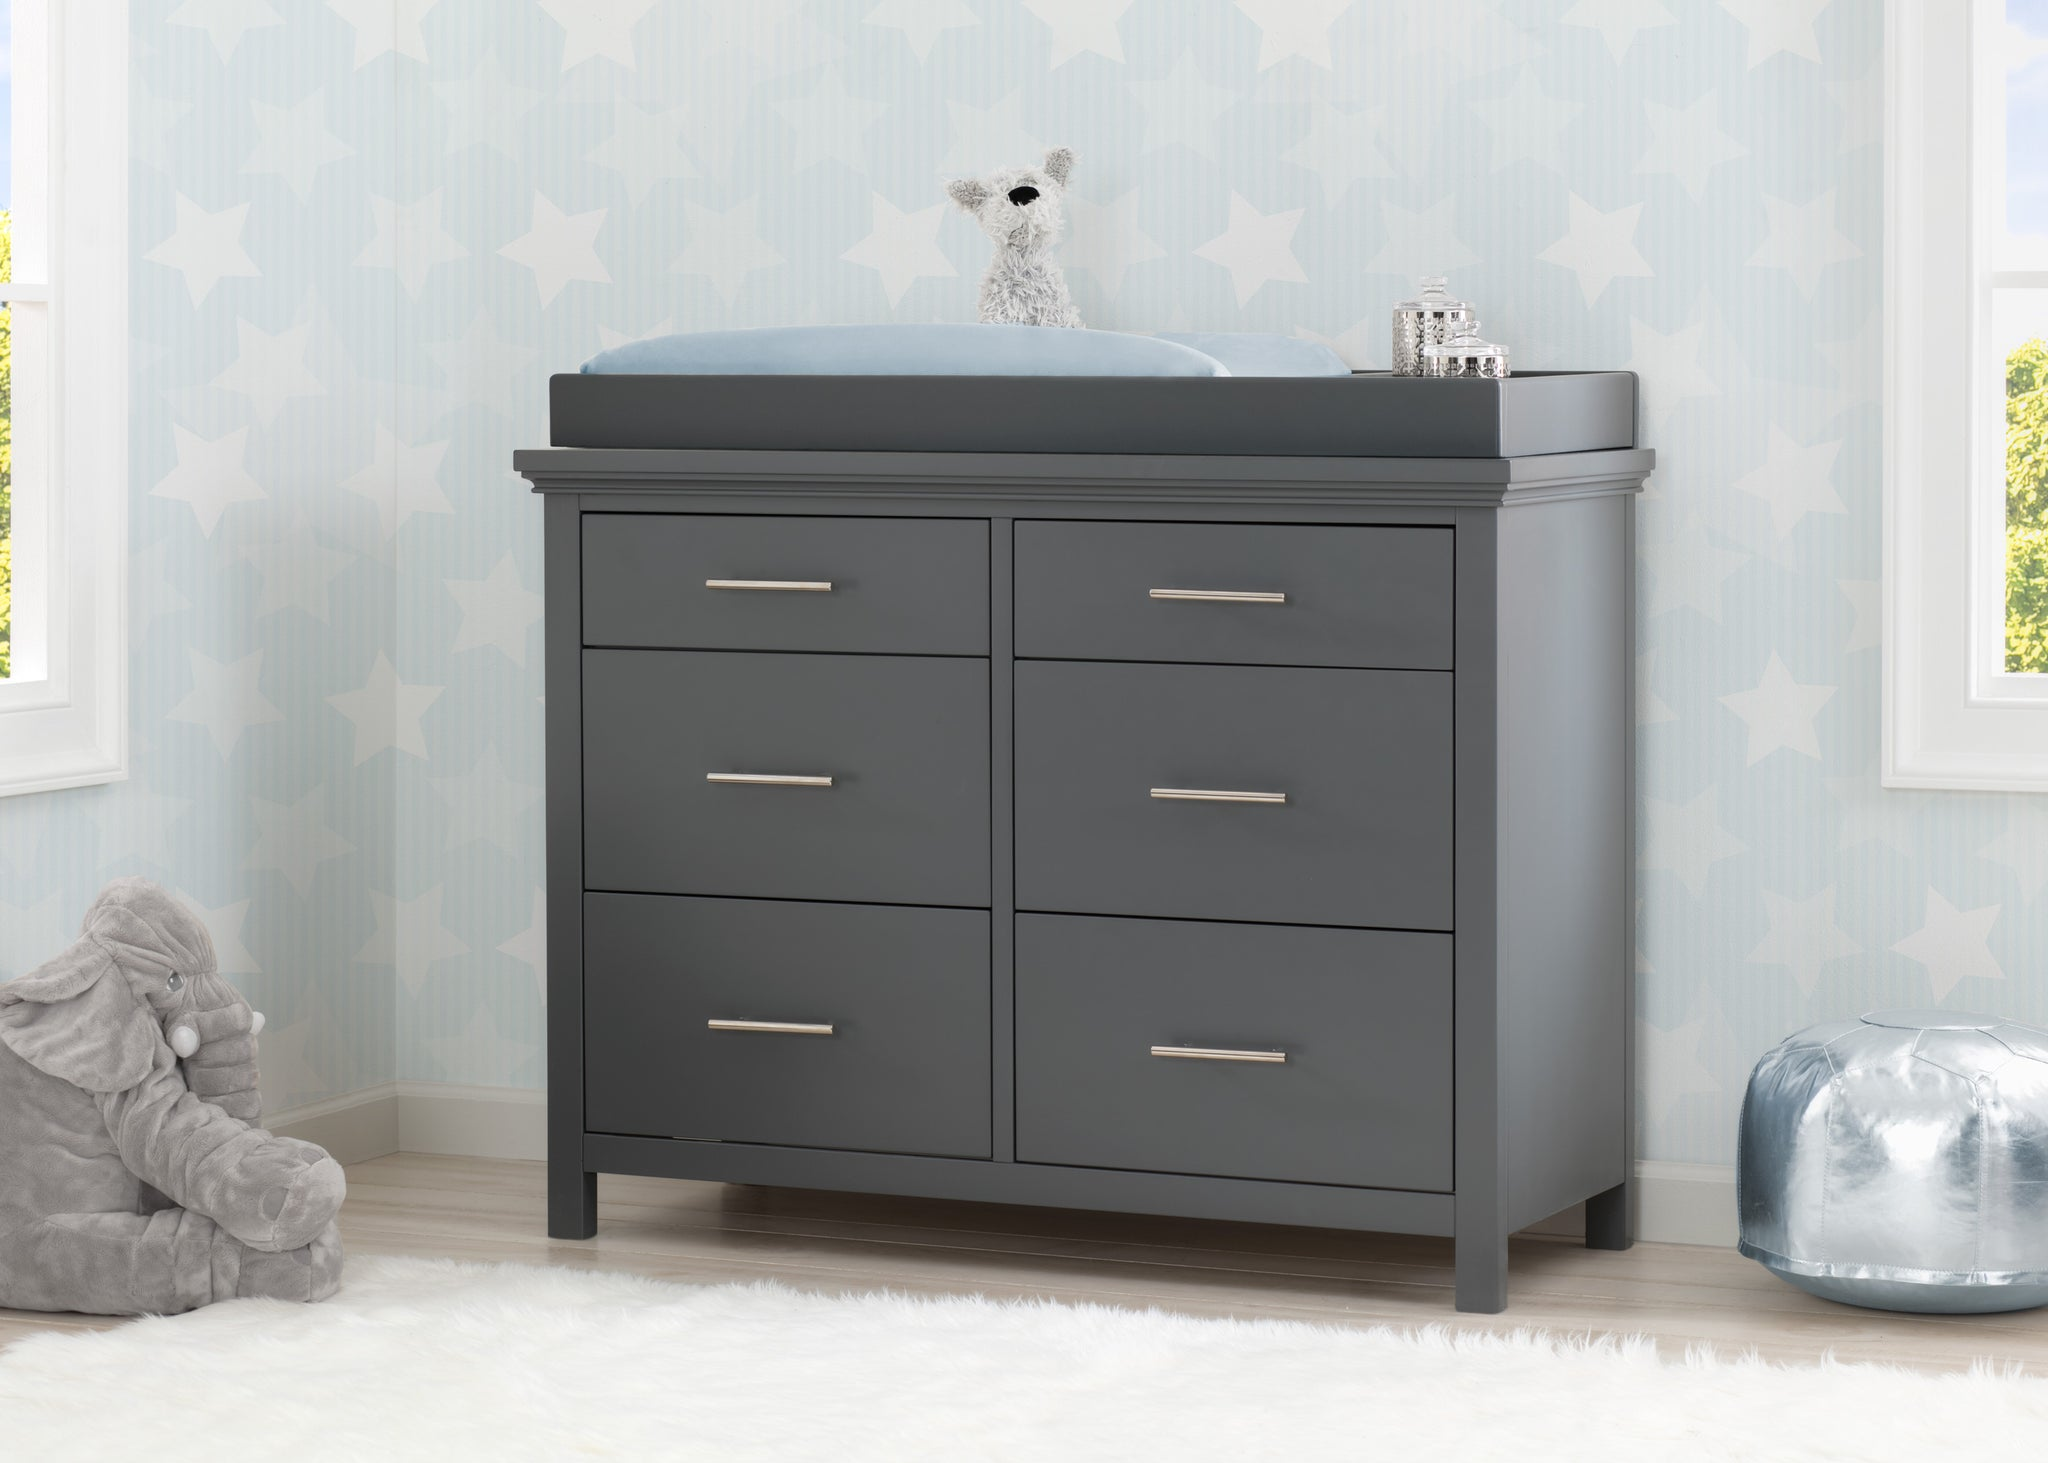 Simmons Kids Charcoal Grey (029) Avery 6 Drawer Dresser with Changing Top, Hangtag View